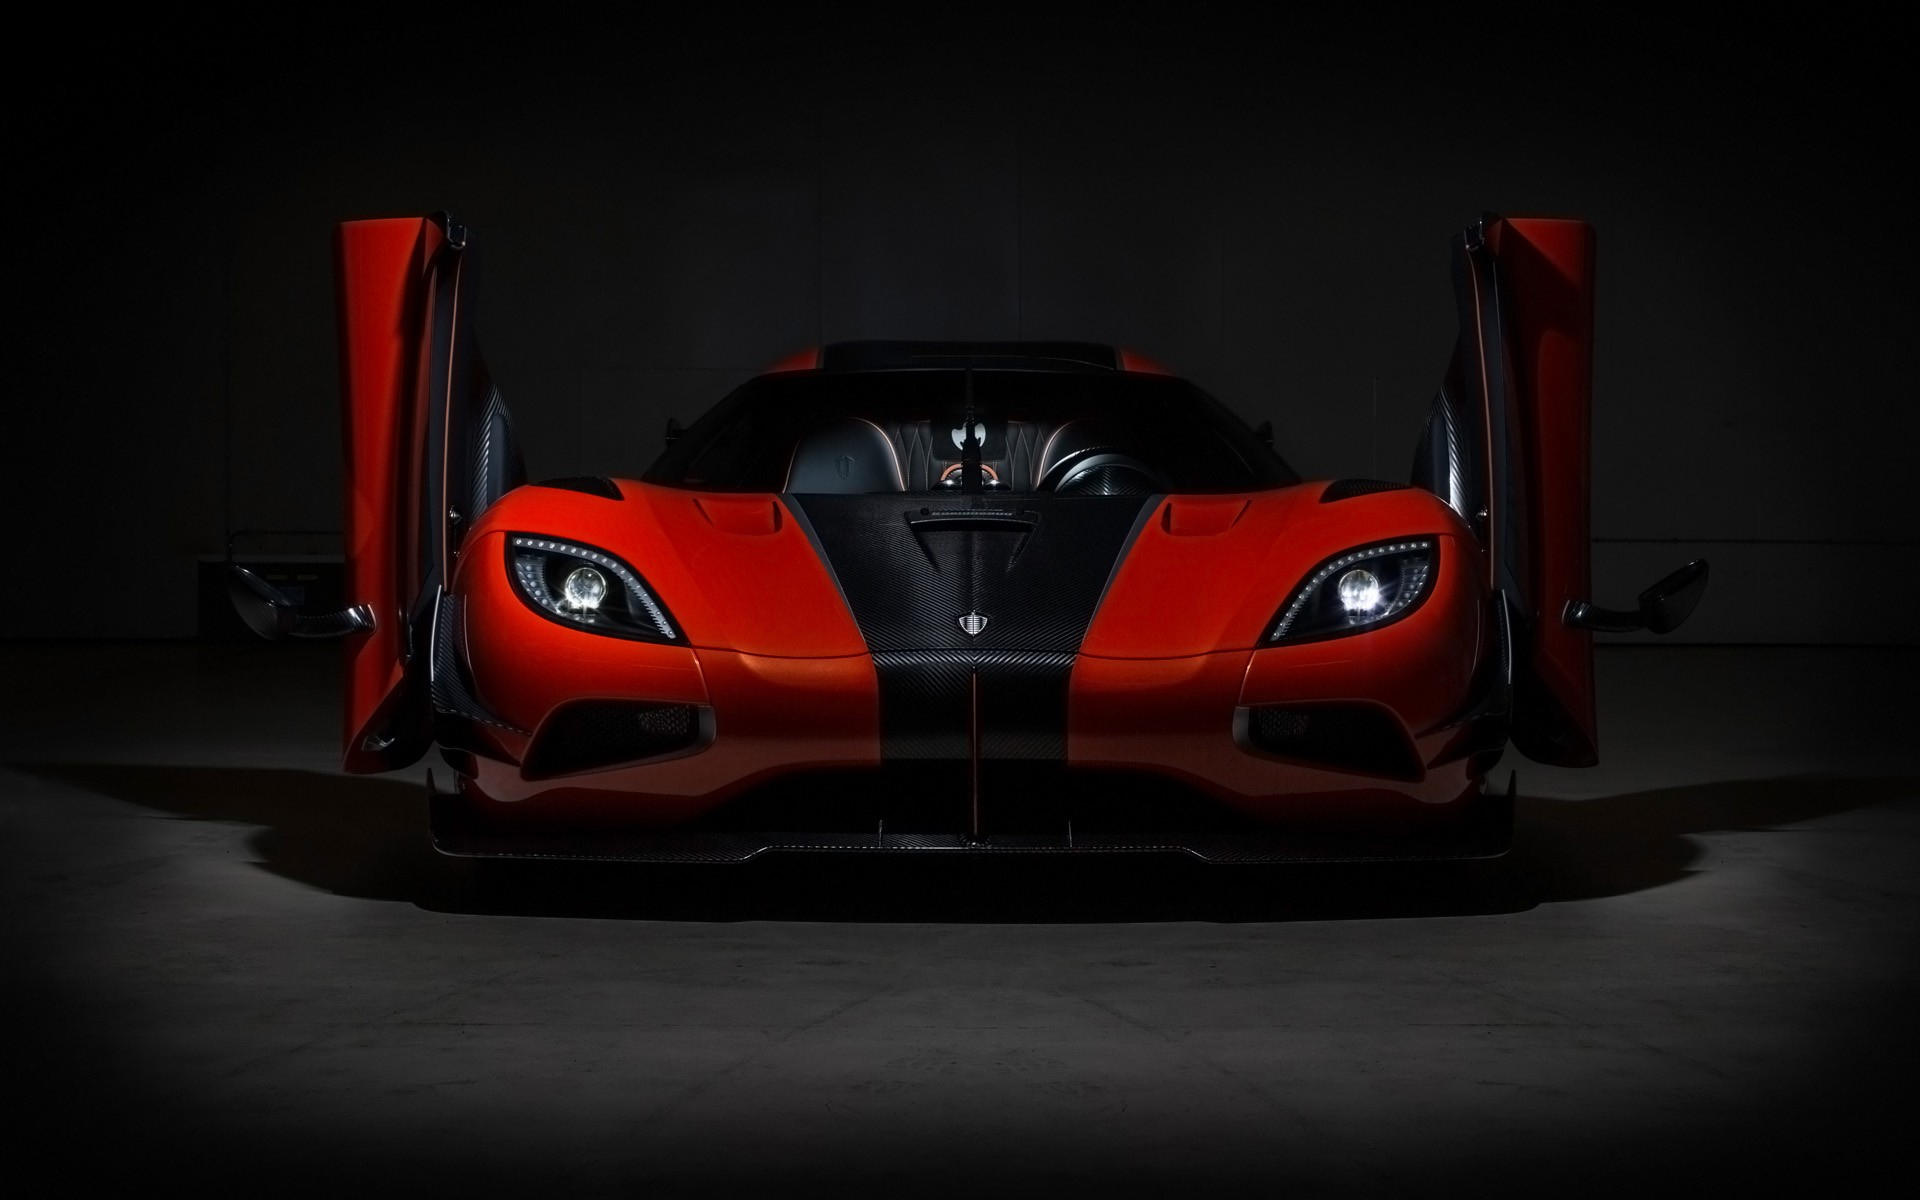 Car Wallpapers Computer Desktop 2016 Koenigsegg Agera Final One Of One 2 Wallpaper Hd